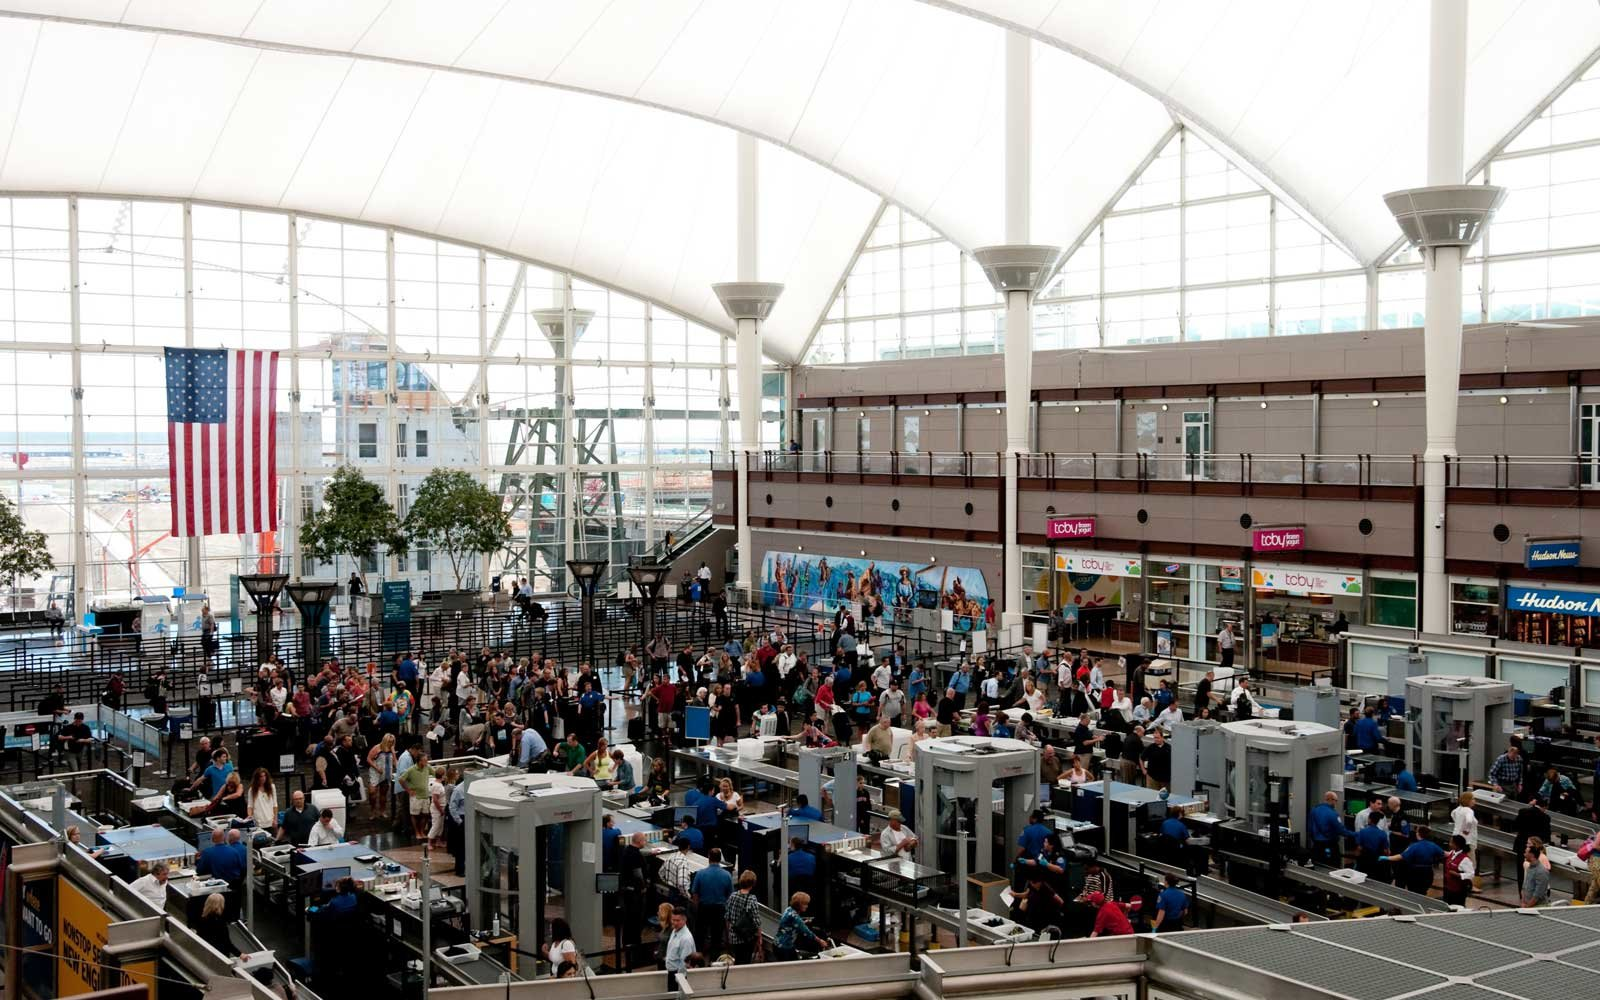 c4de48c6cb A record number of travelers are expected in U.S. airports this Spring Break  season.